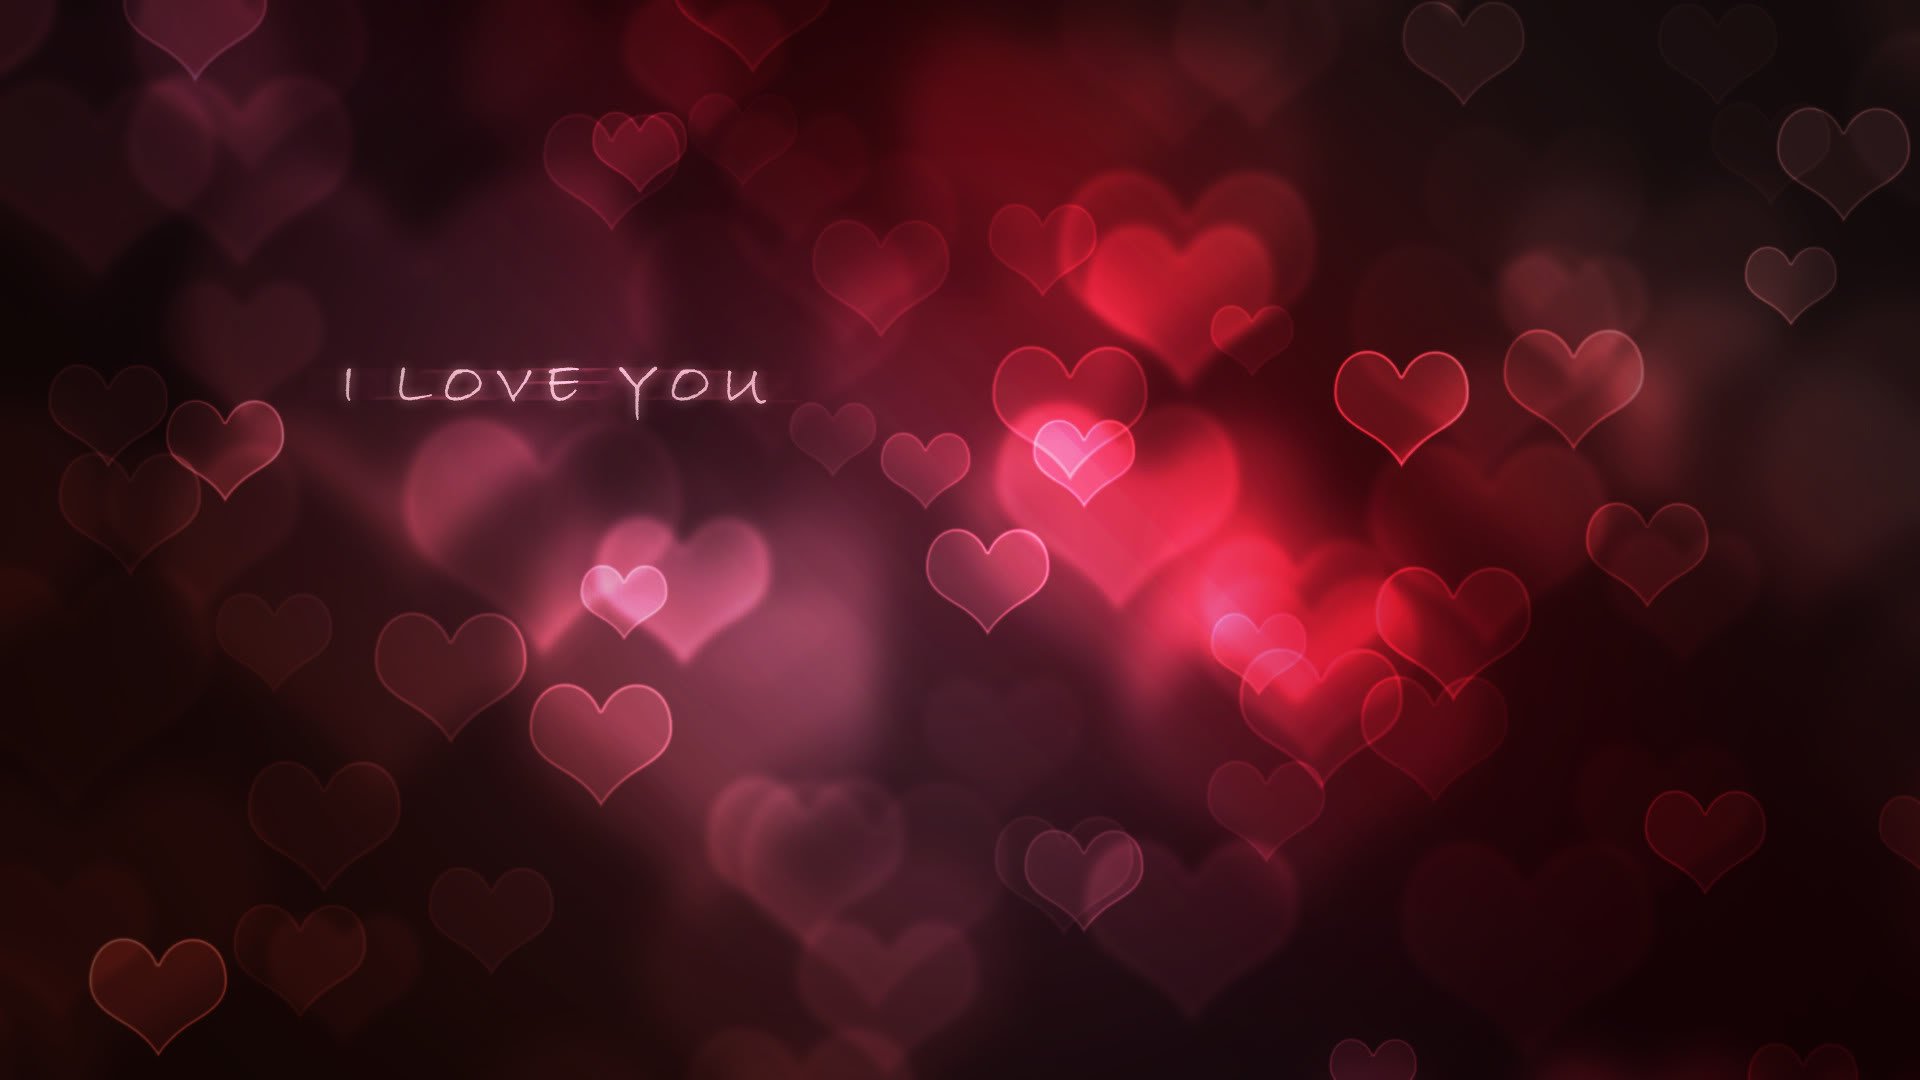 Wallpaper I Love You Photo : 25+ Sentimental I Love You Pictures PicsHunger